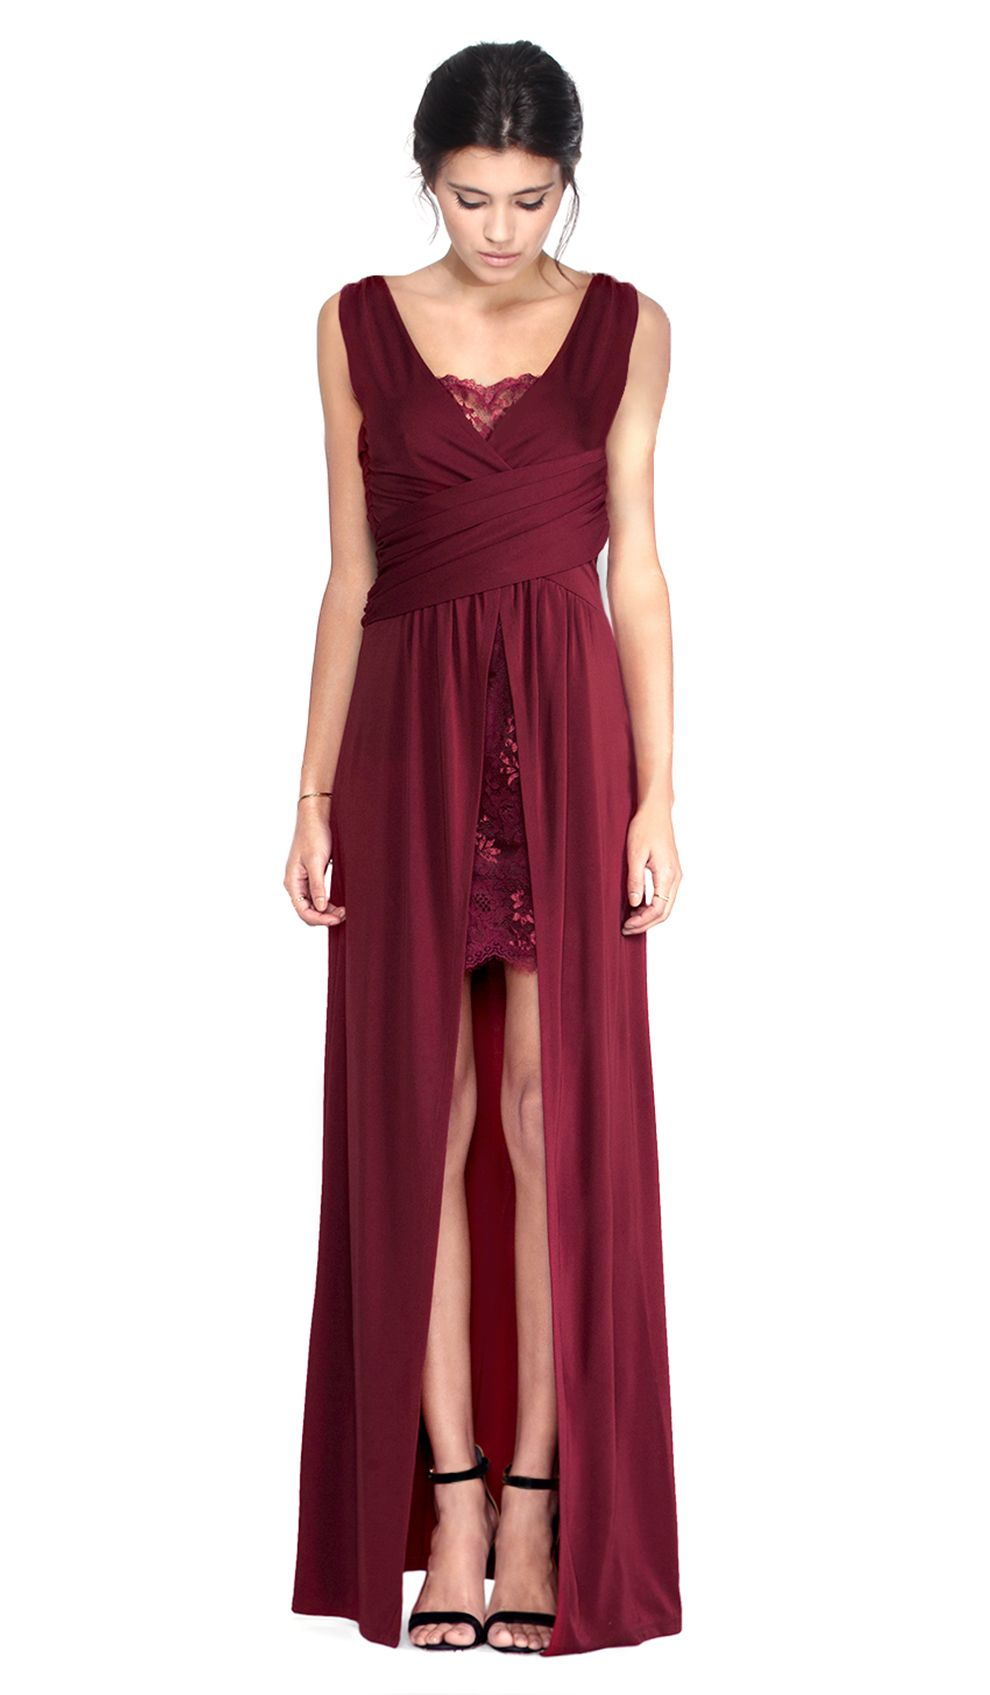 Alice by temperley burgundy lace long dress chic by choice alice by temperley burgundy lace long dress chic by choice hire designer dresses and ombrellifo Images